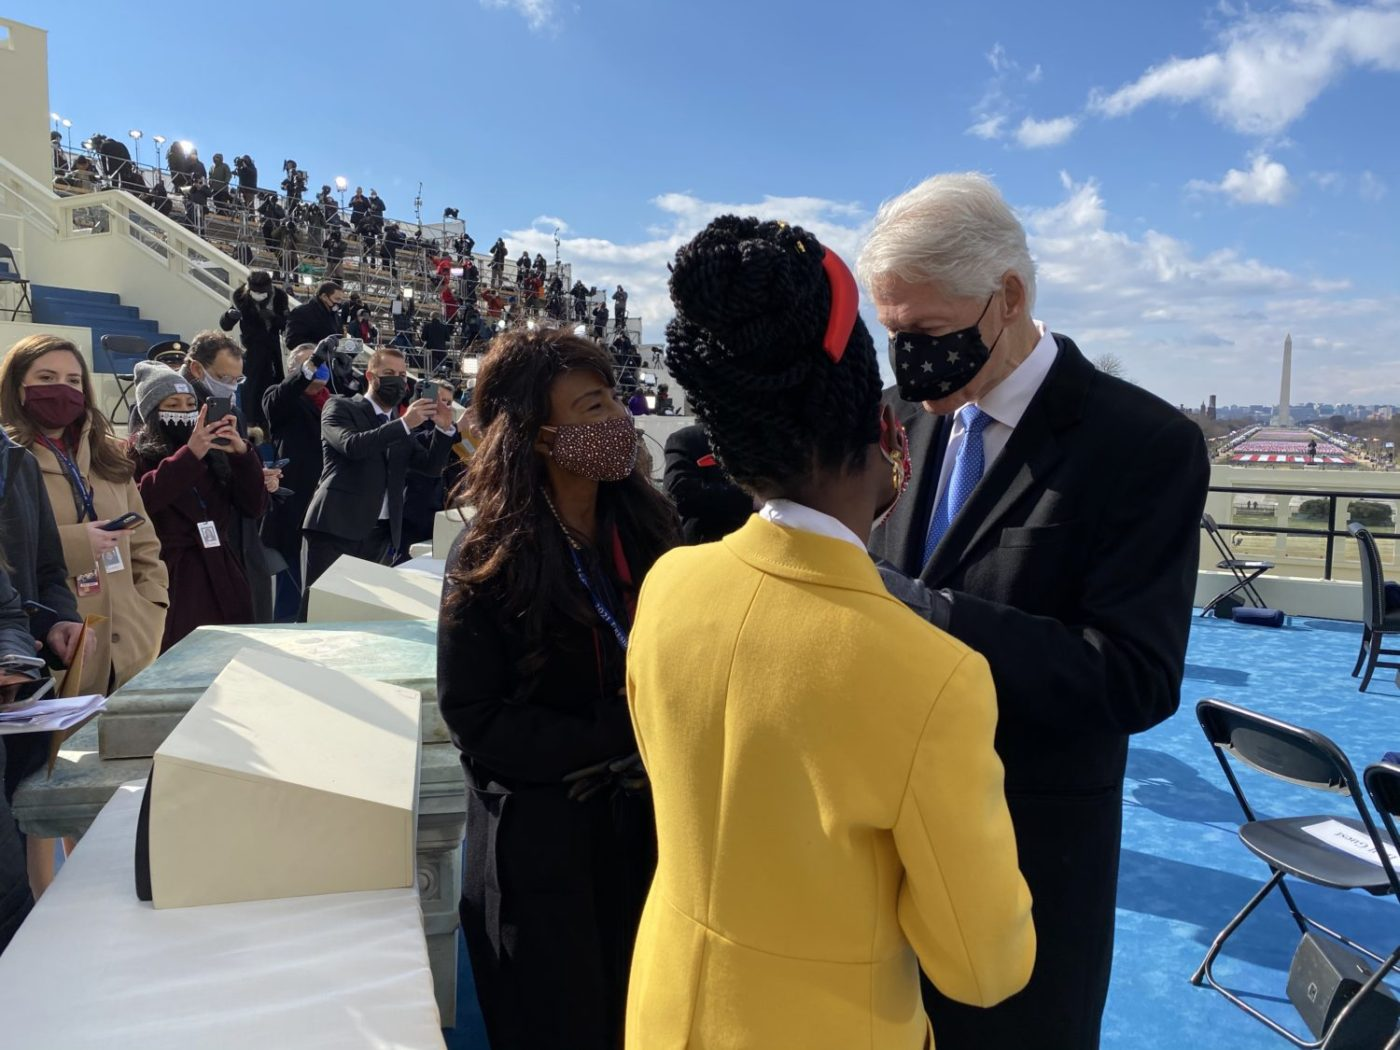 Amanda-Gorman-Bill-Clinton-Inauguration-Day-012021-by-Rep.-Jim-Costa-1400x1050, On the Brown Side: Insurrection, inauguration and rebirth, National News & Views